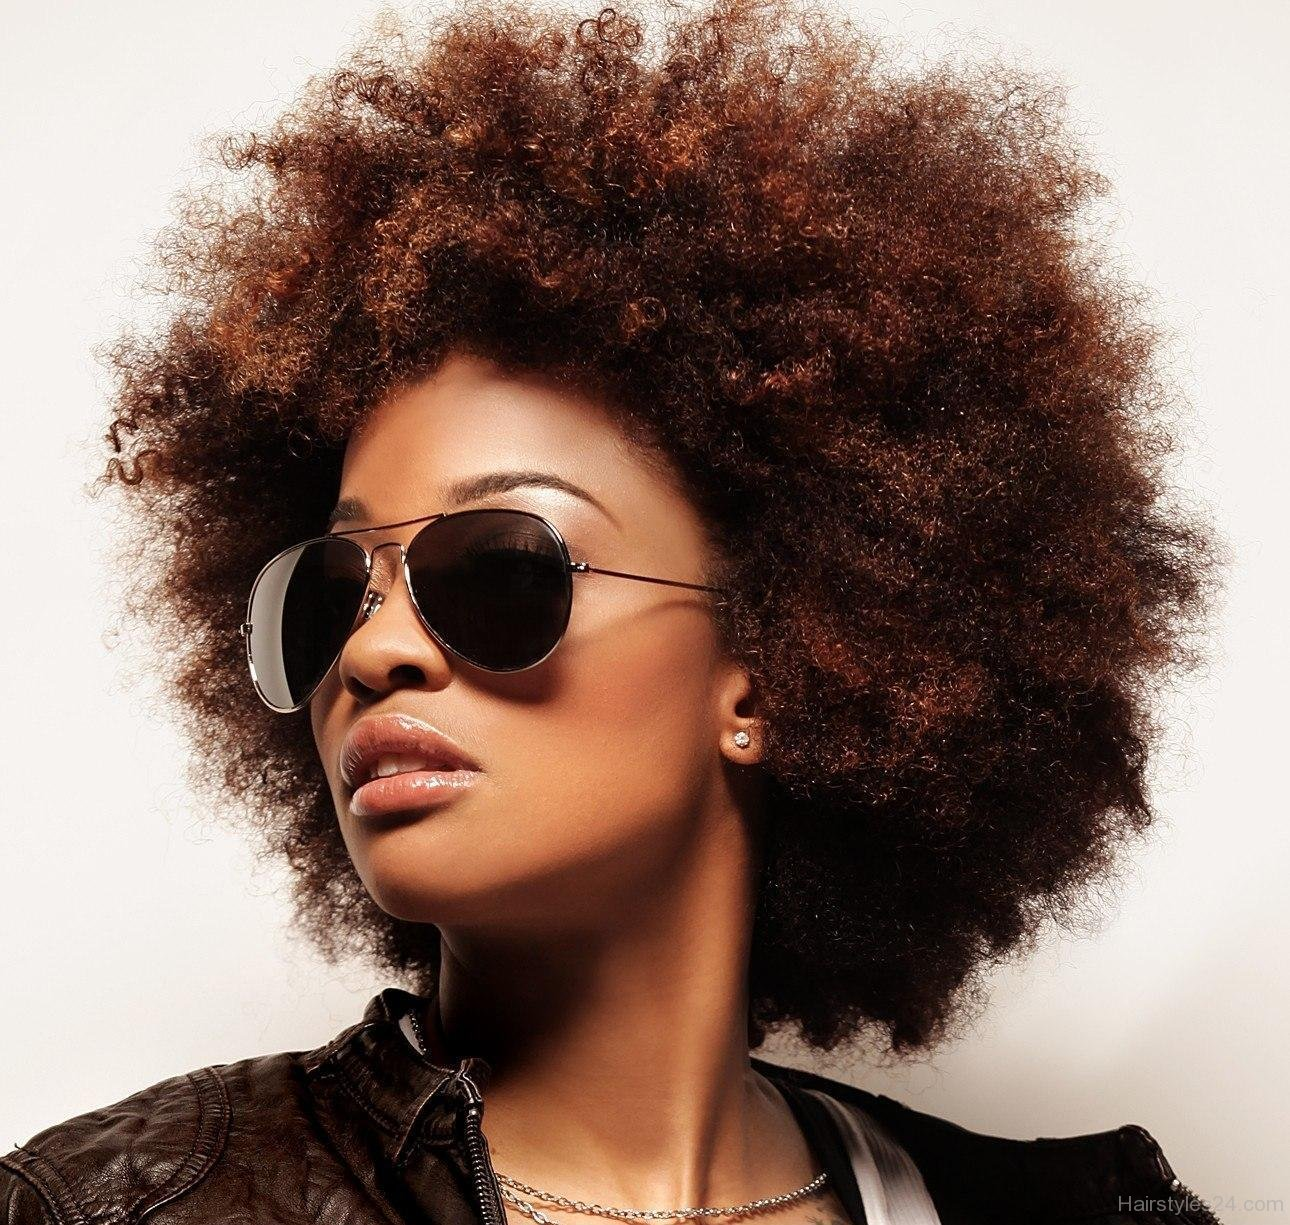 Cool Cutest Afro Hairstyles For Black Women Hairstyles 2016 Hair Short Hairstyles For Black Women Fulllsitofus